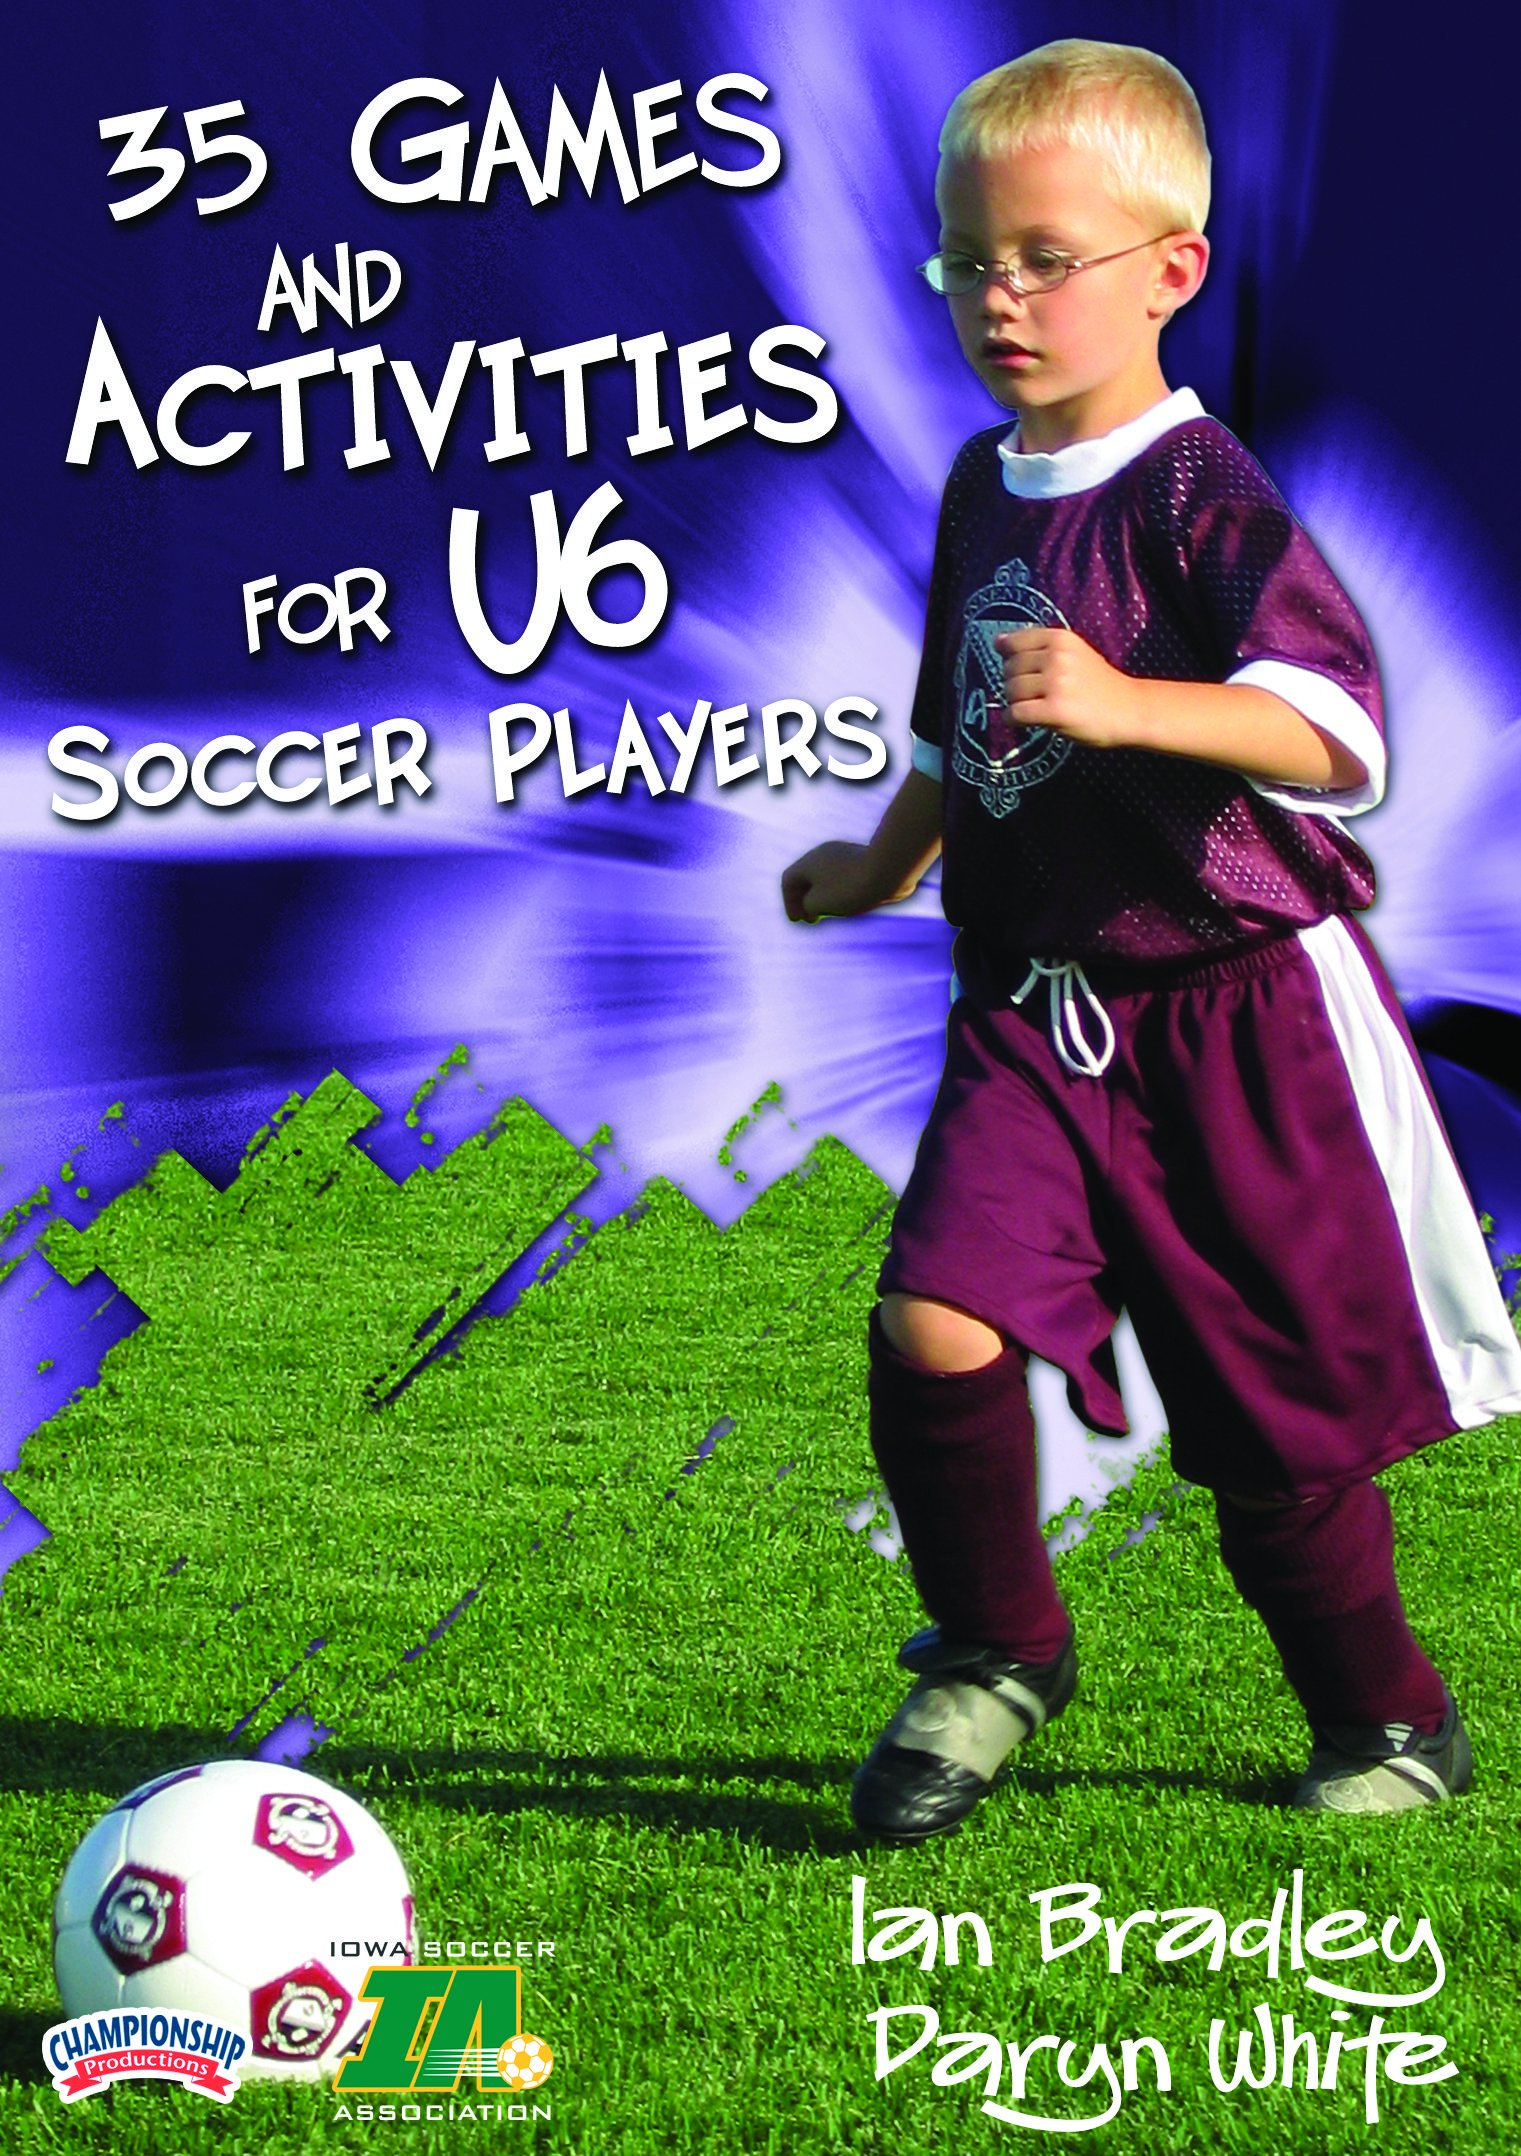 Championship Productions Games and Activities for U6 Soccer Players DVD